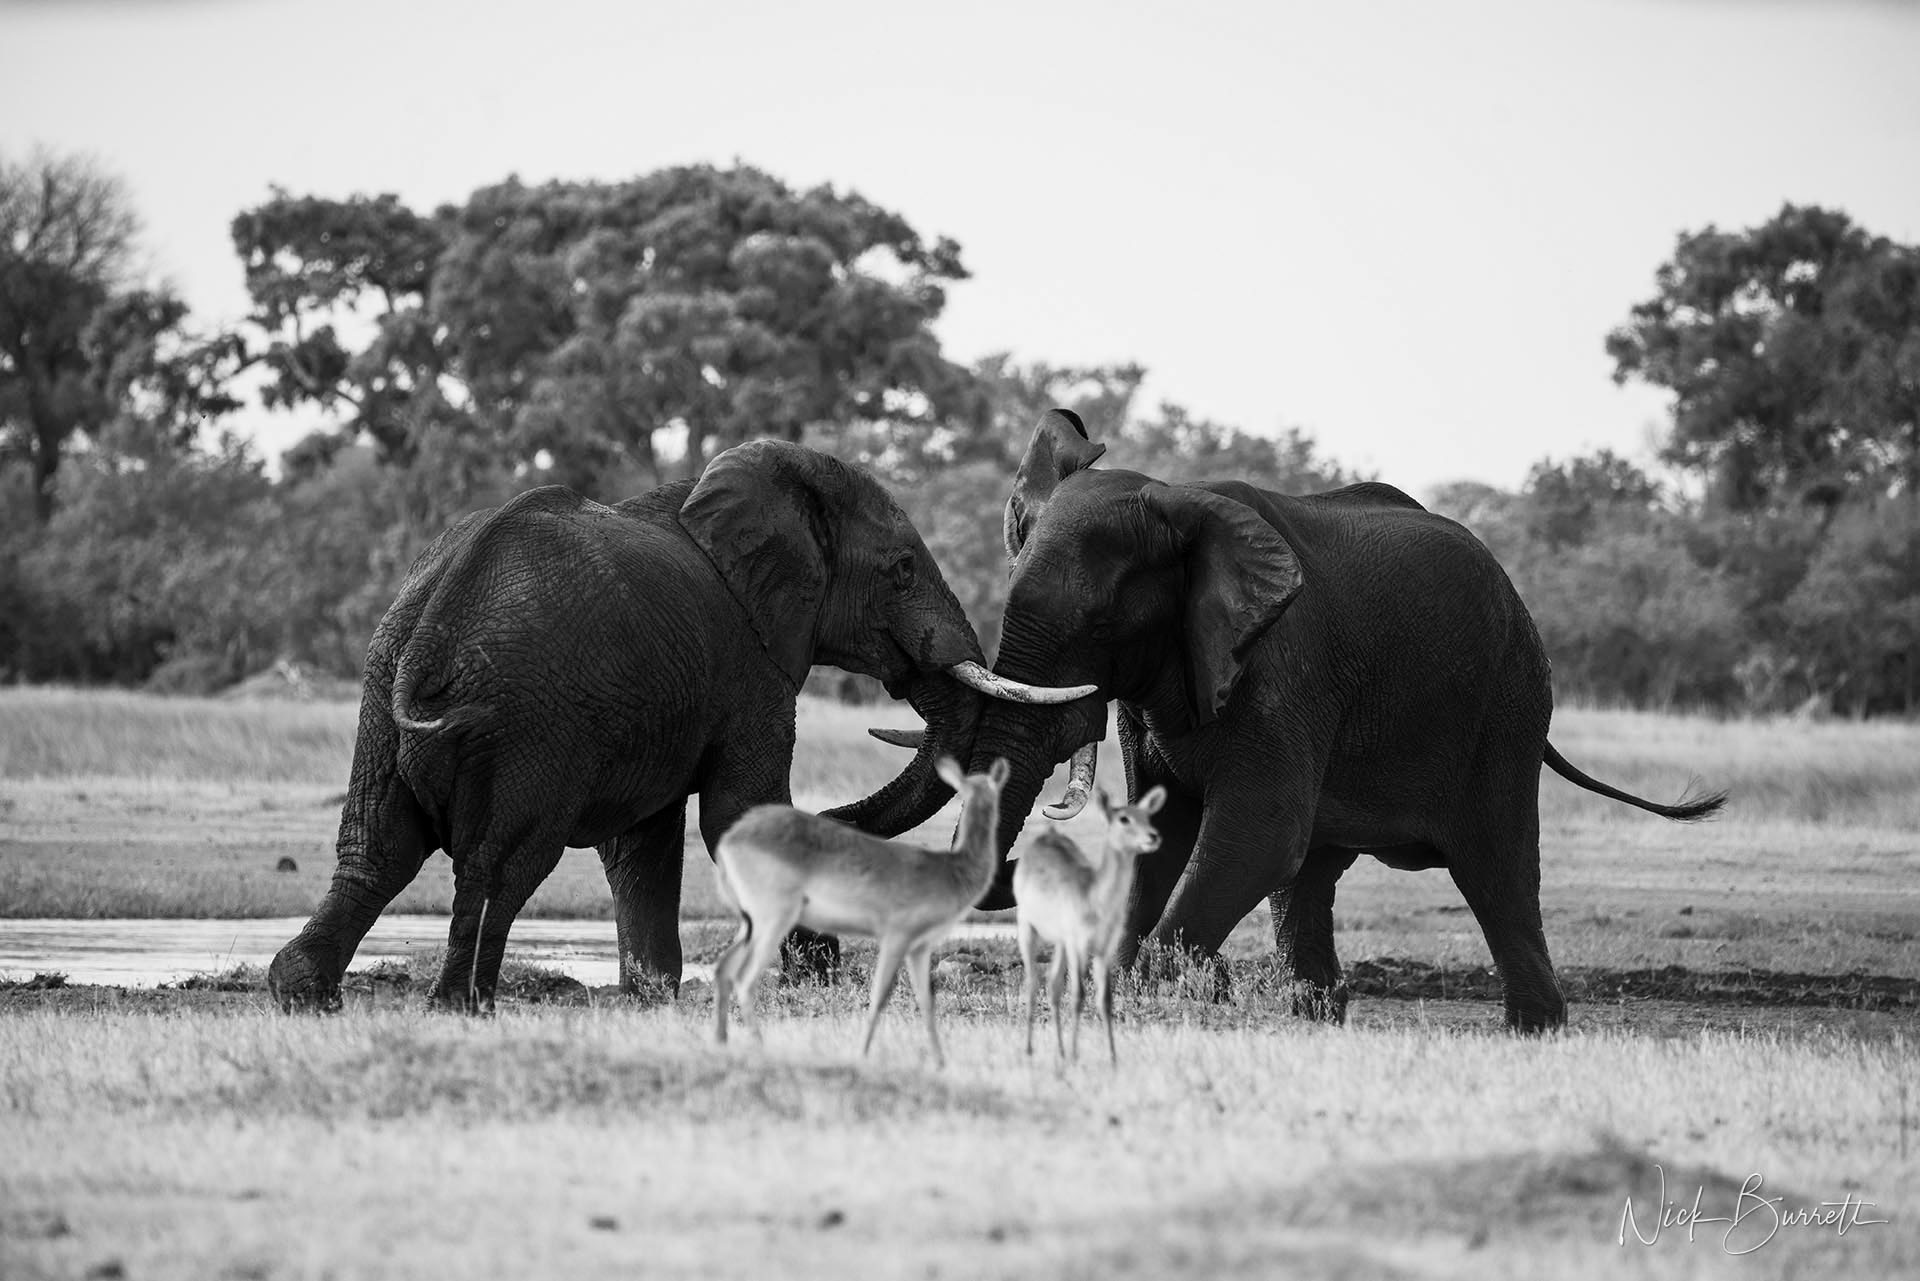 Africa Botswana Okavango Photography Safari Workshop by Nick Burrett